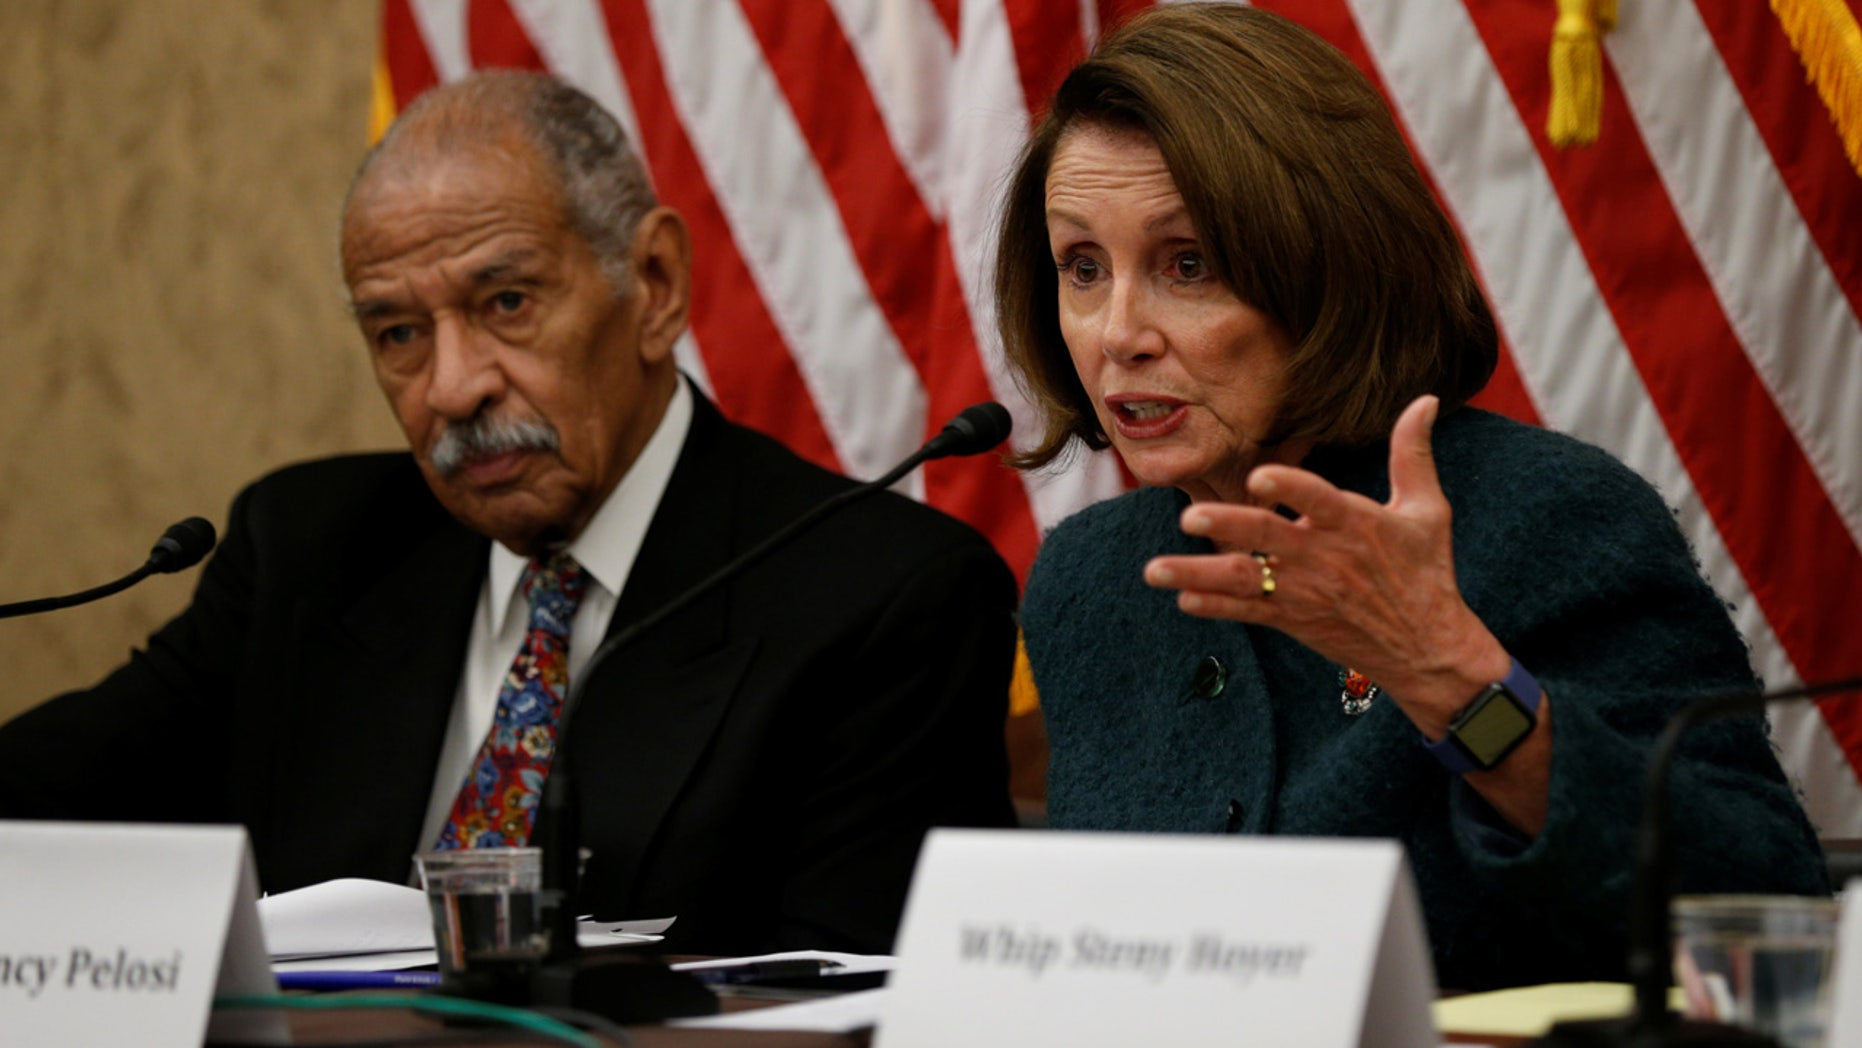 House Minority leader Nancy Pelosi and Rep. John Conyers take part in a discussion panel on President Trump's Muslim and refugee ban in the U.S. Capitol in Washington, U.S., February 2, 2017.